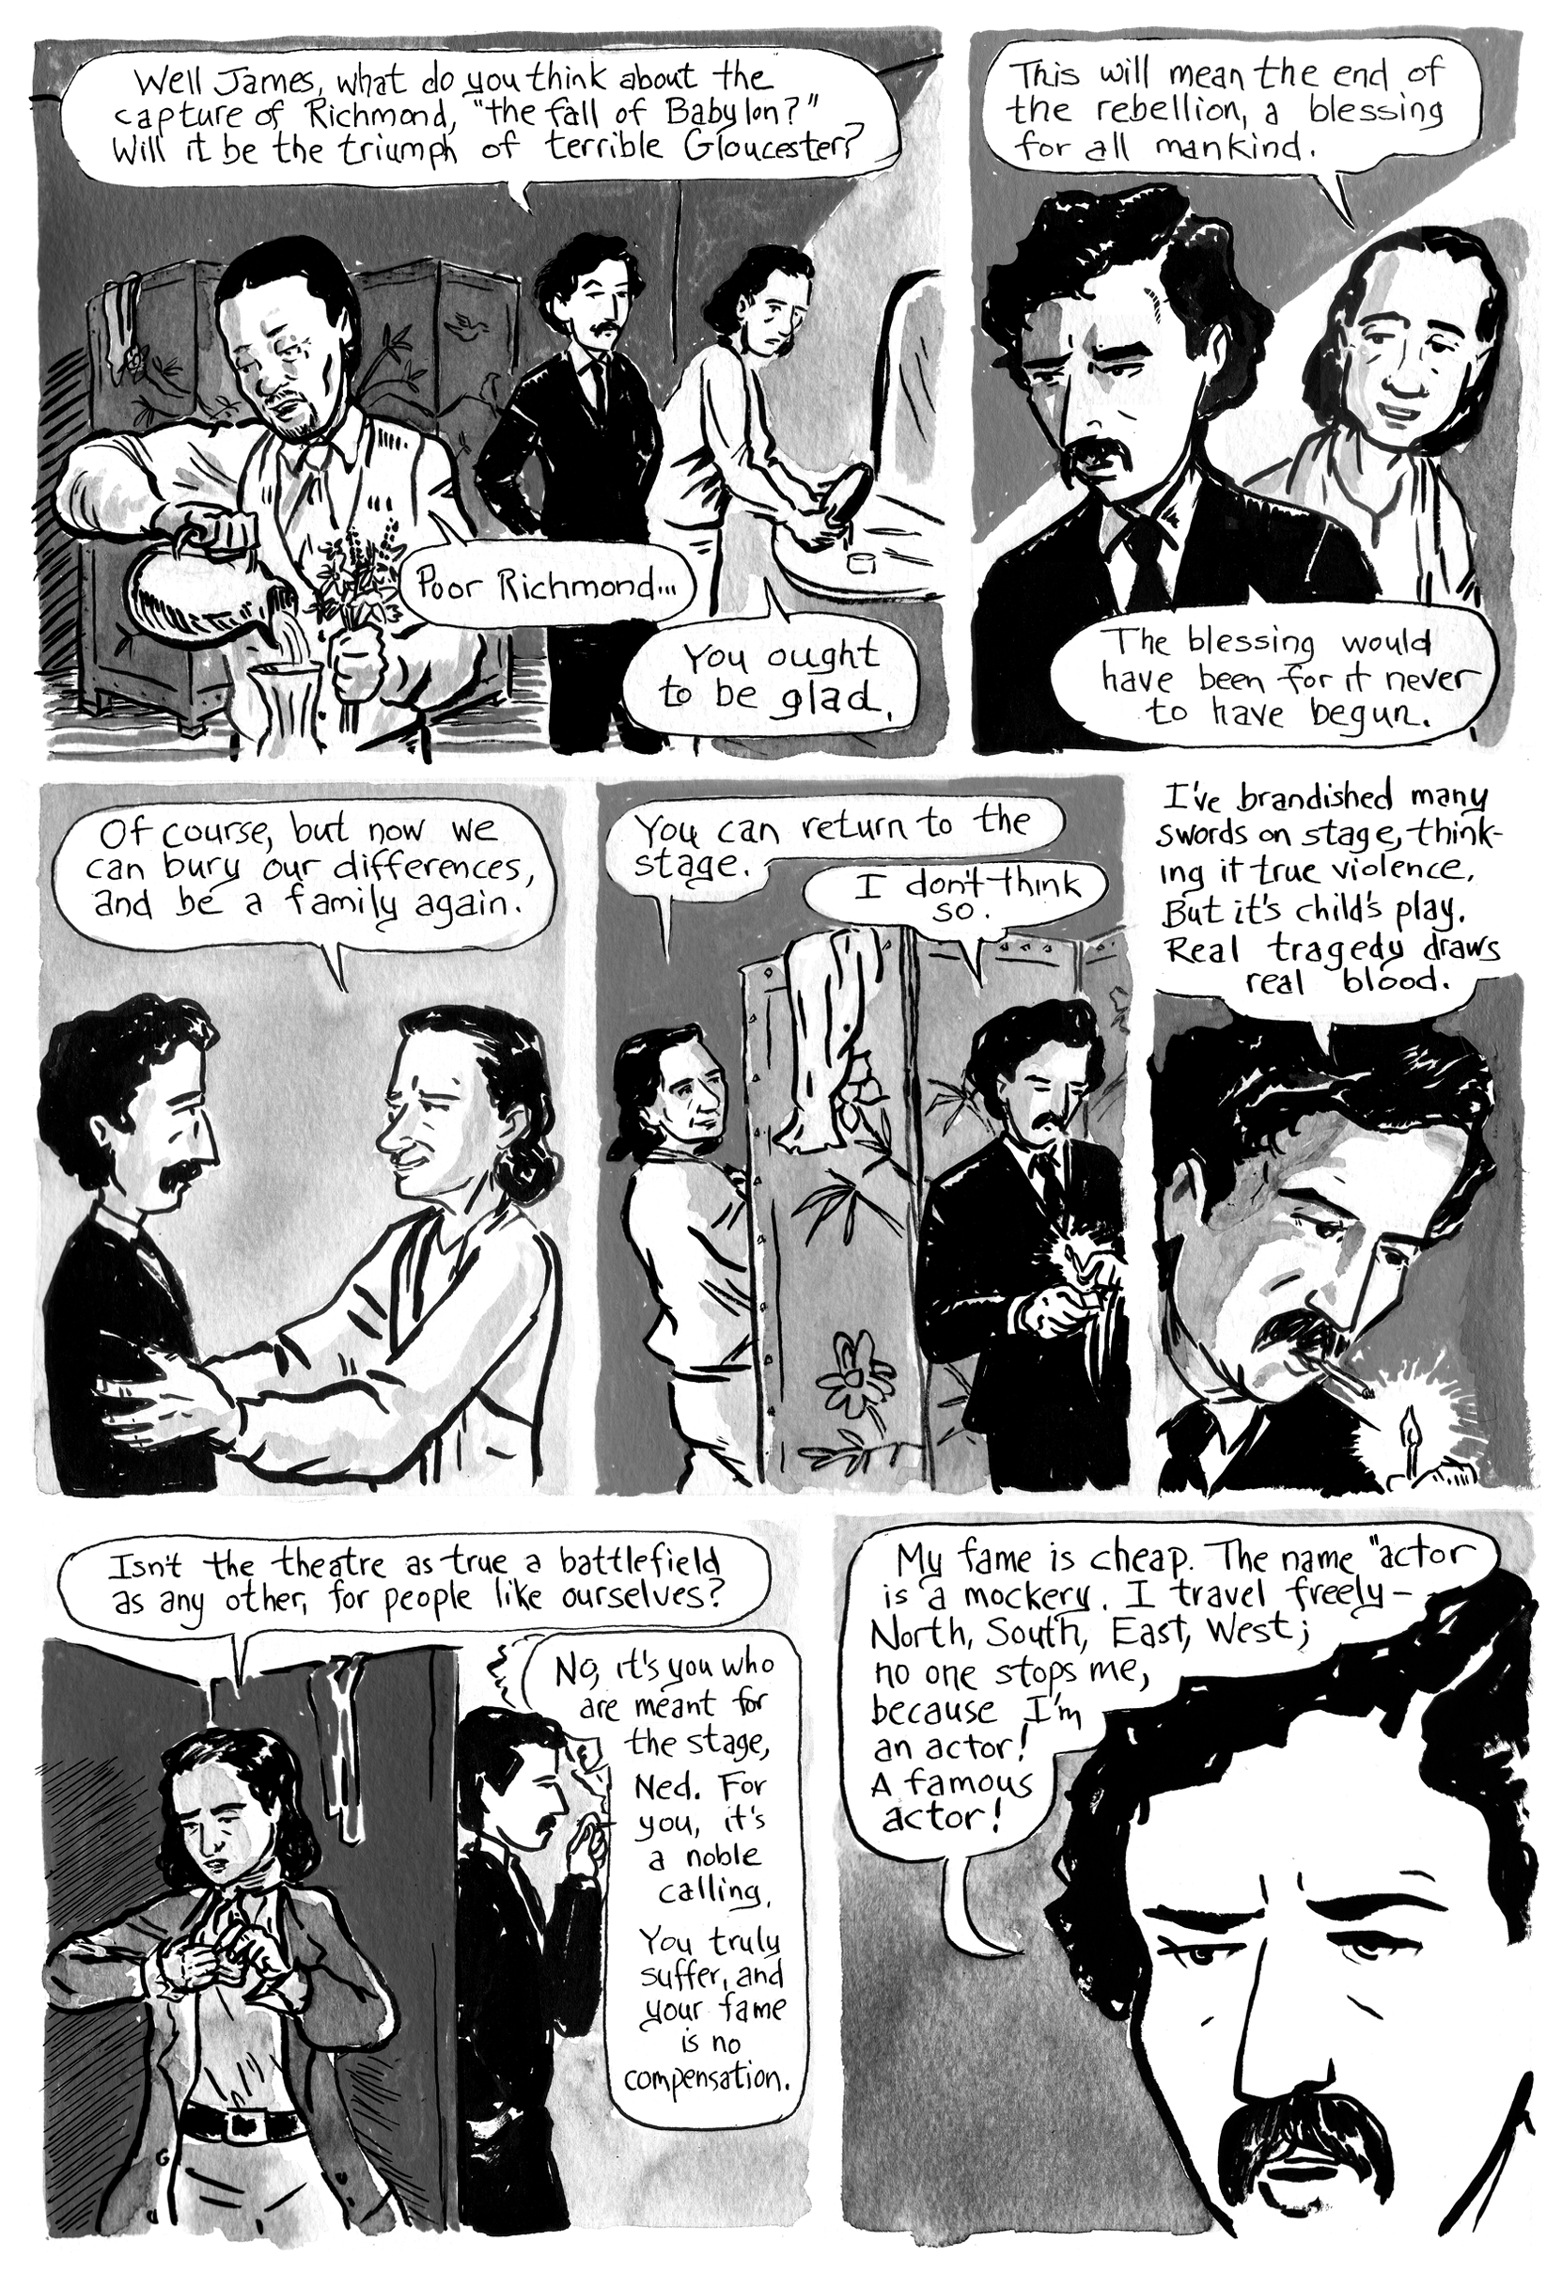 The Last Act, Page 3